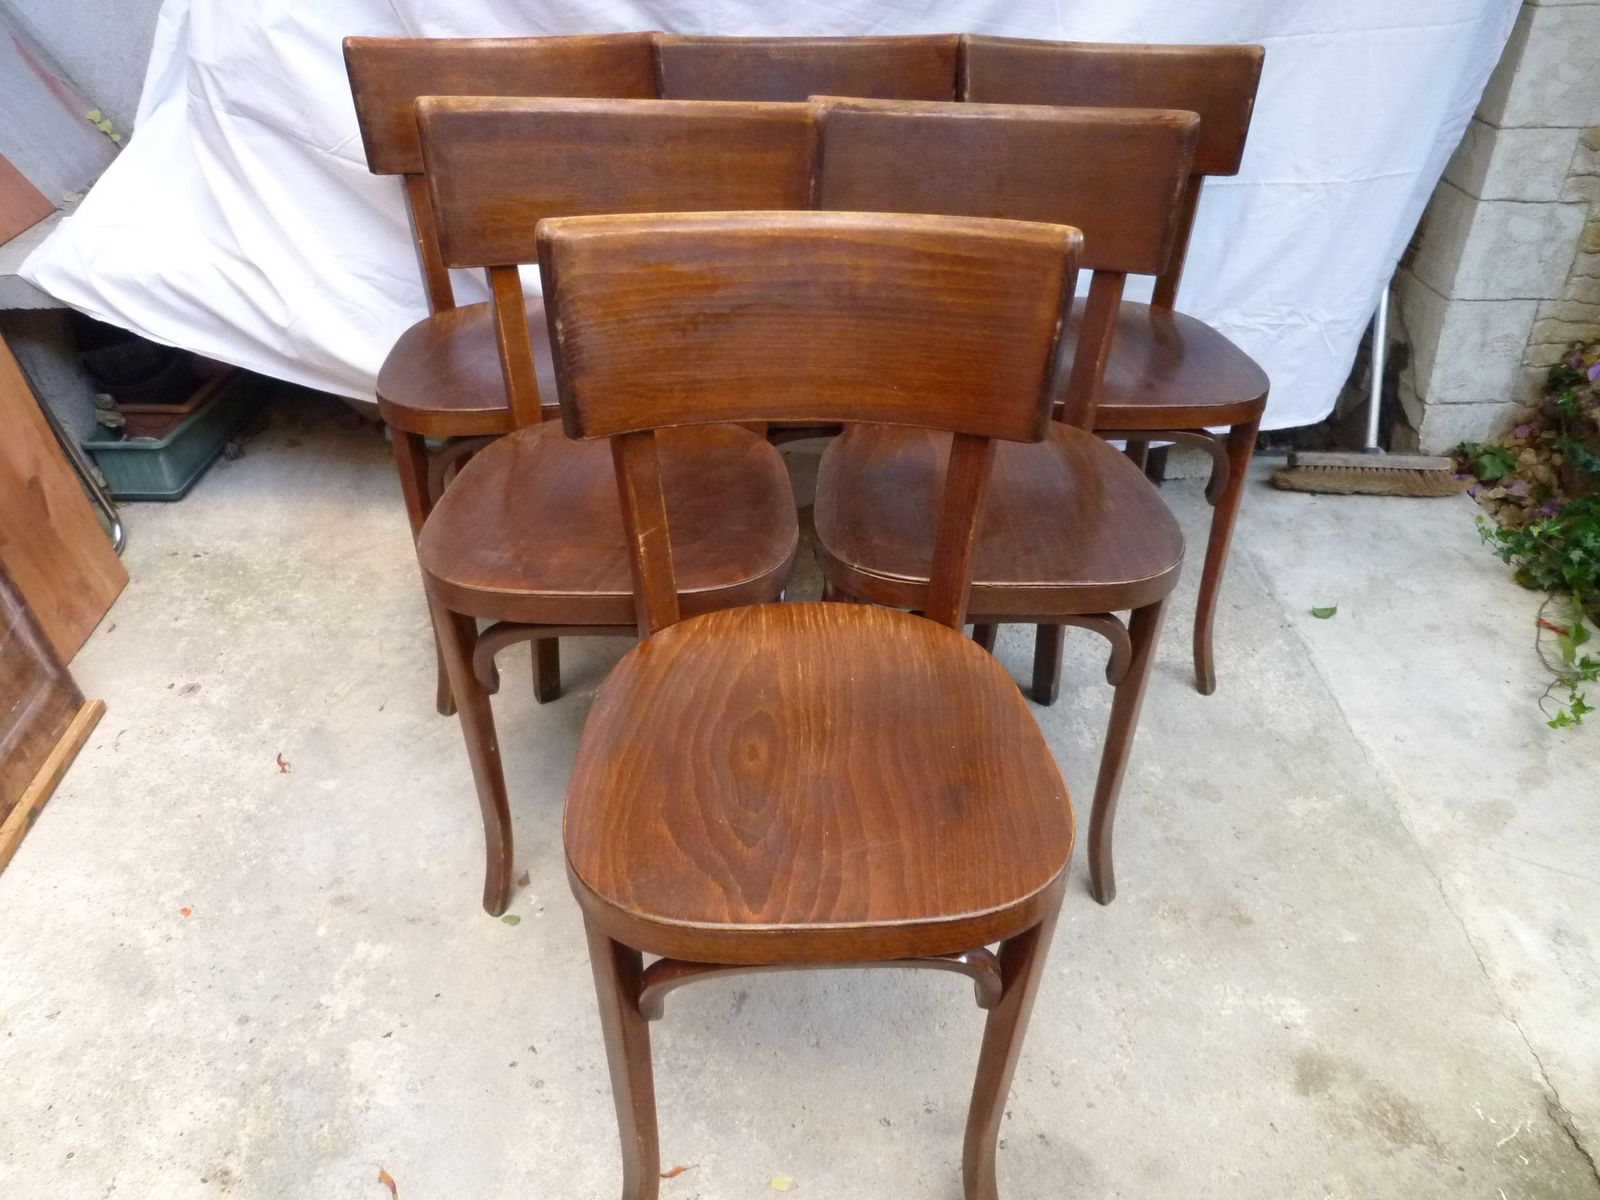 Vintage Bistro Chairs From Baumann, Set Of 6 For Sale At Pamono. Vintage  Bistro Chairs From Baumann Set Of 6 For Sale At Pamono